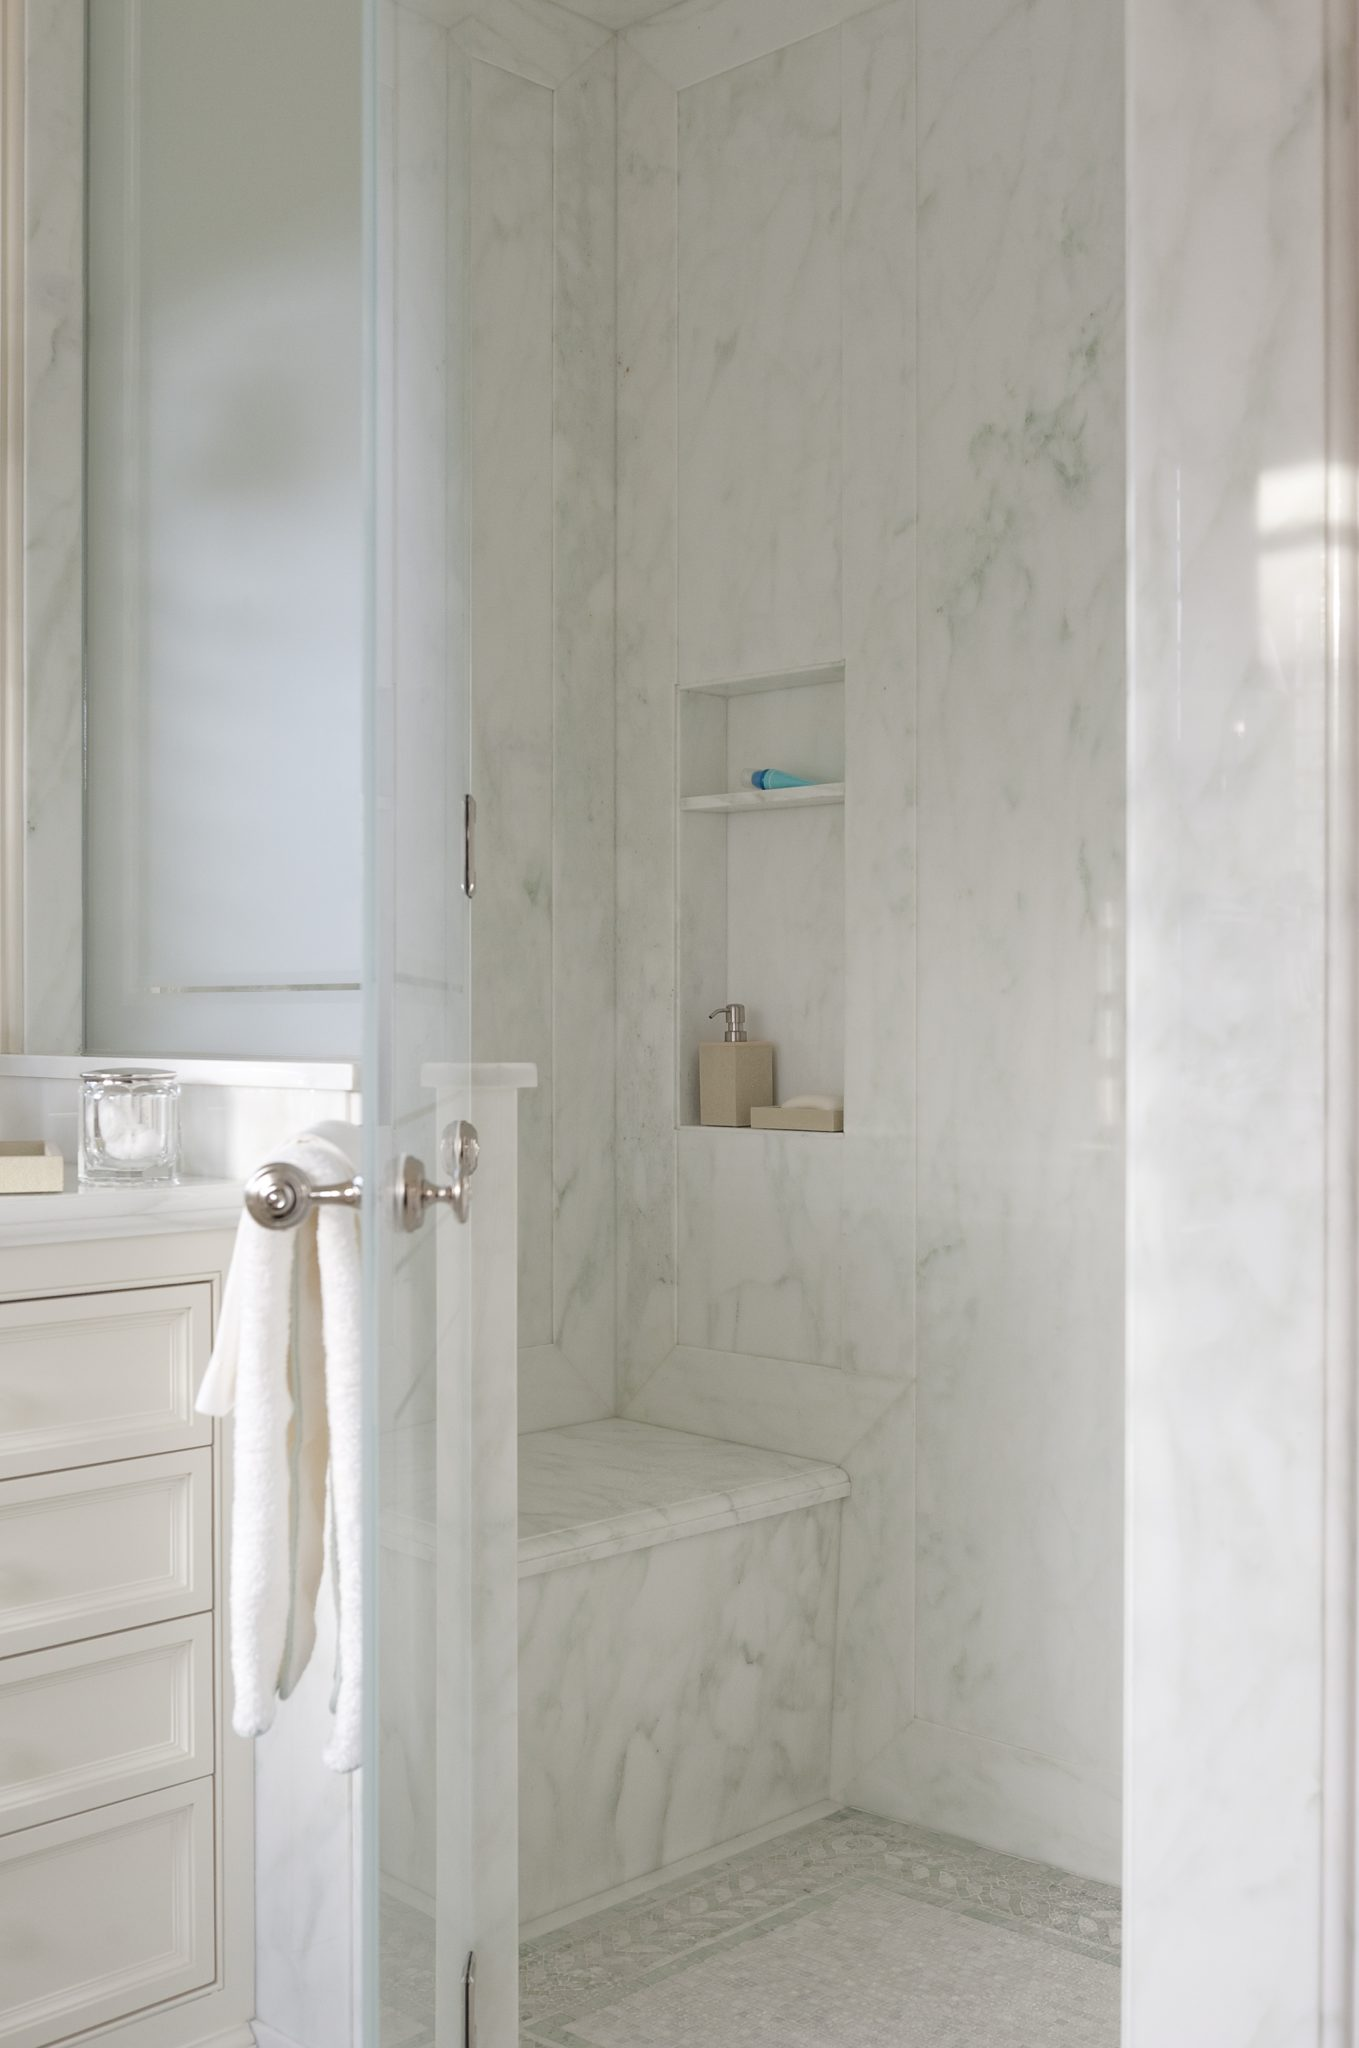 The marble for the countertops and shower walls isCalacatta Caldia, and the mosaic border on the floor is from Waterworks.